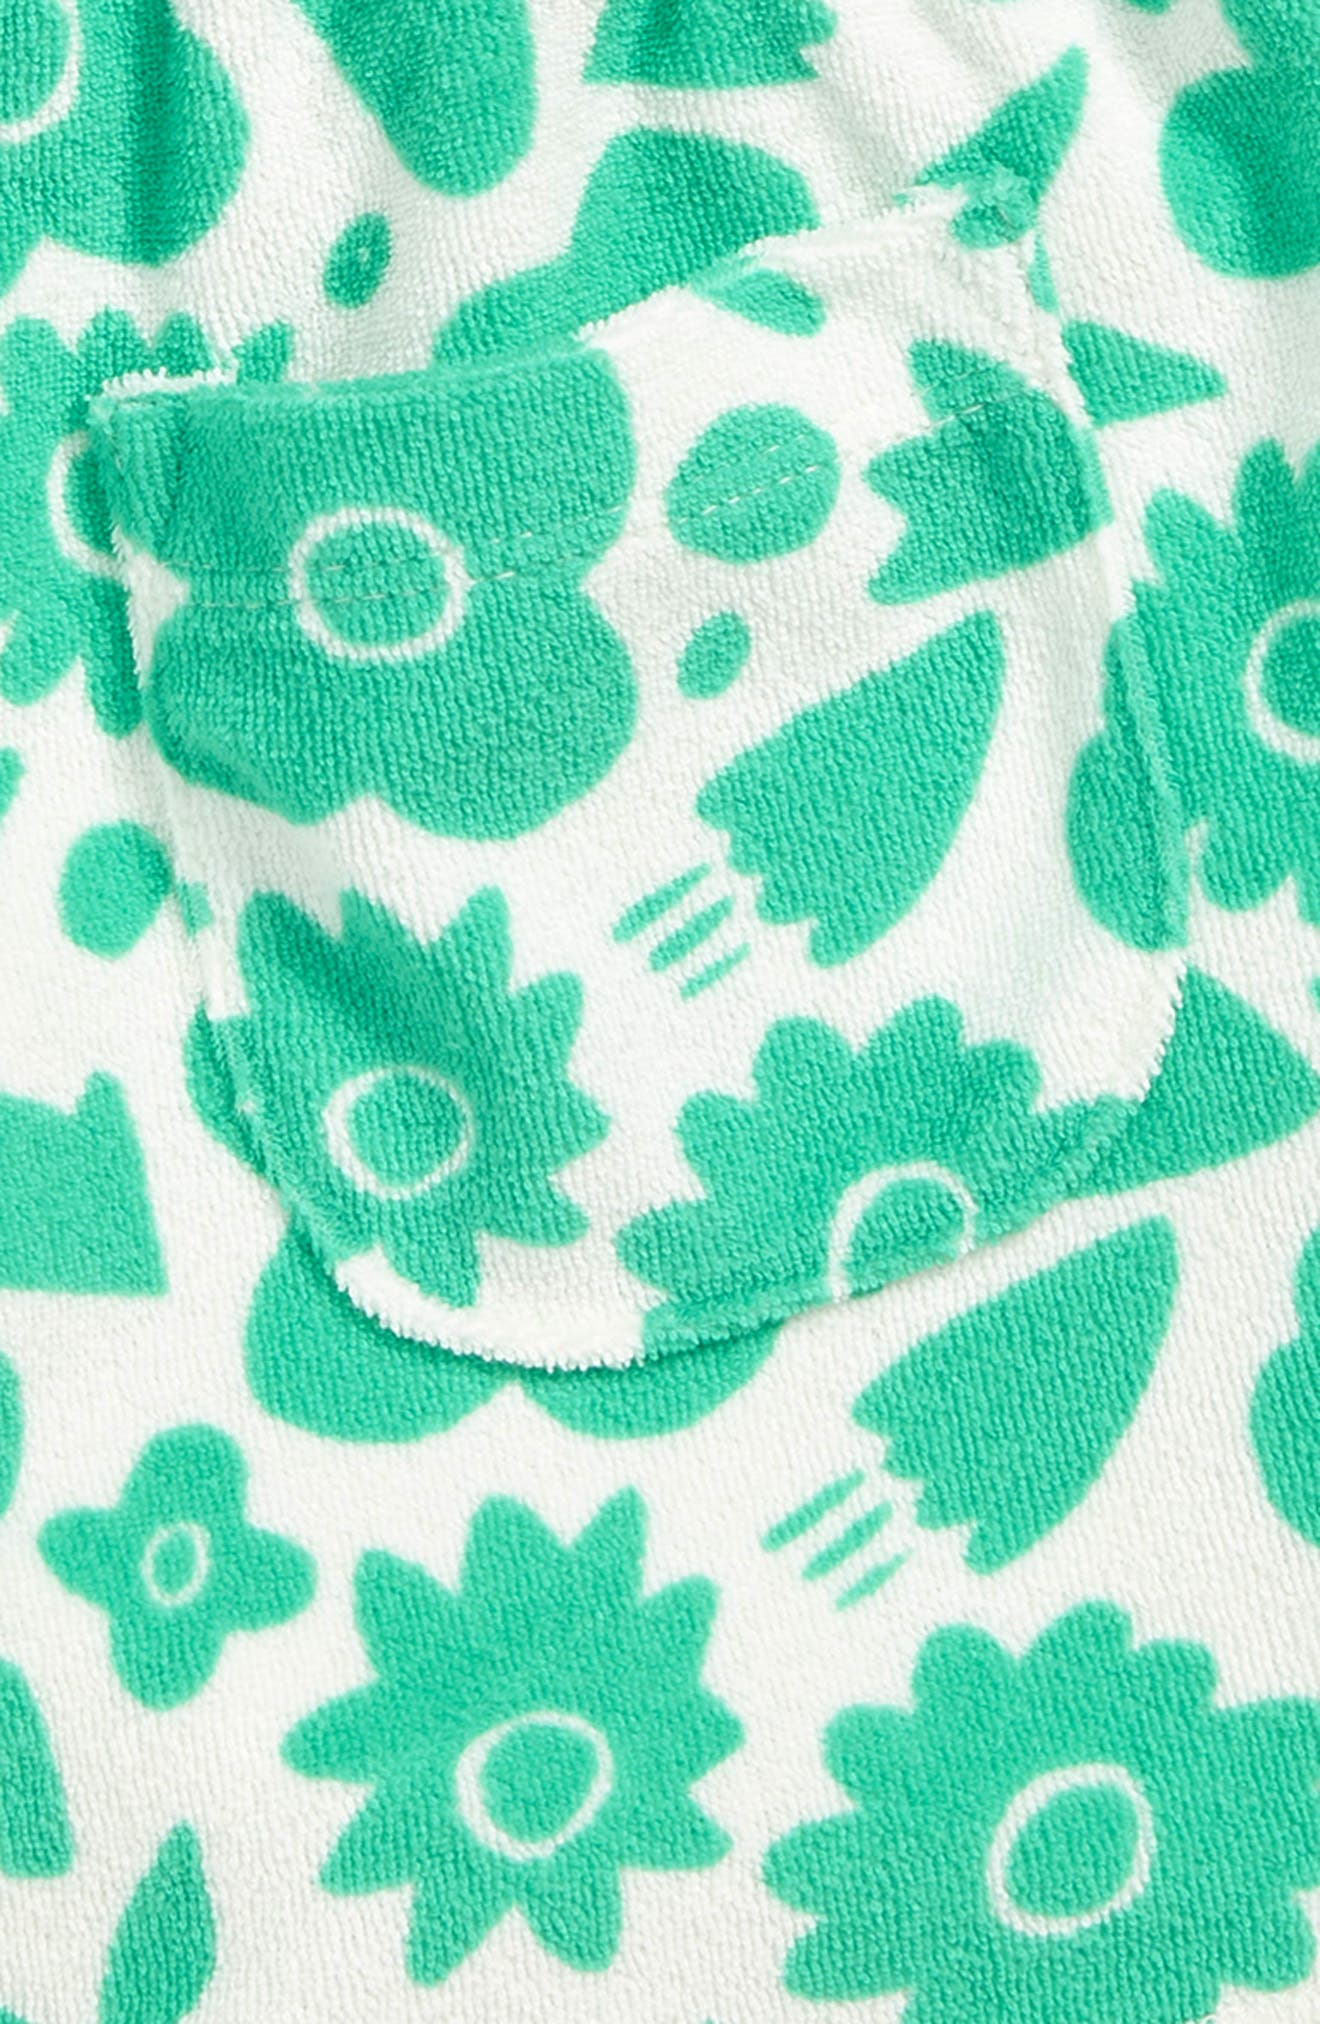 MINI BODEN, Terry Cloth Shorts, Alternate thumbnail 3, color, GRN JUNGLE GREEN POP FLORAL